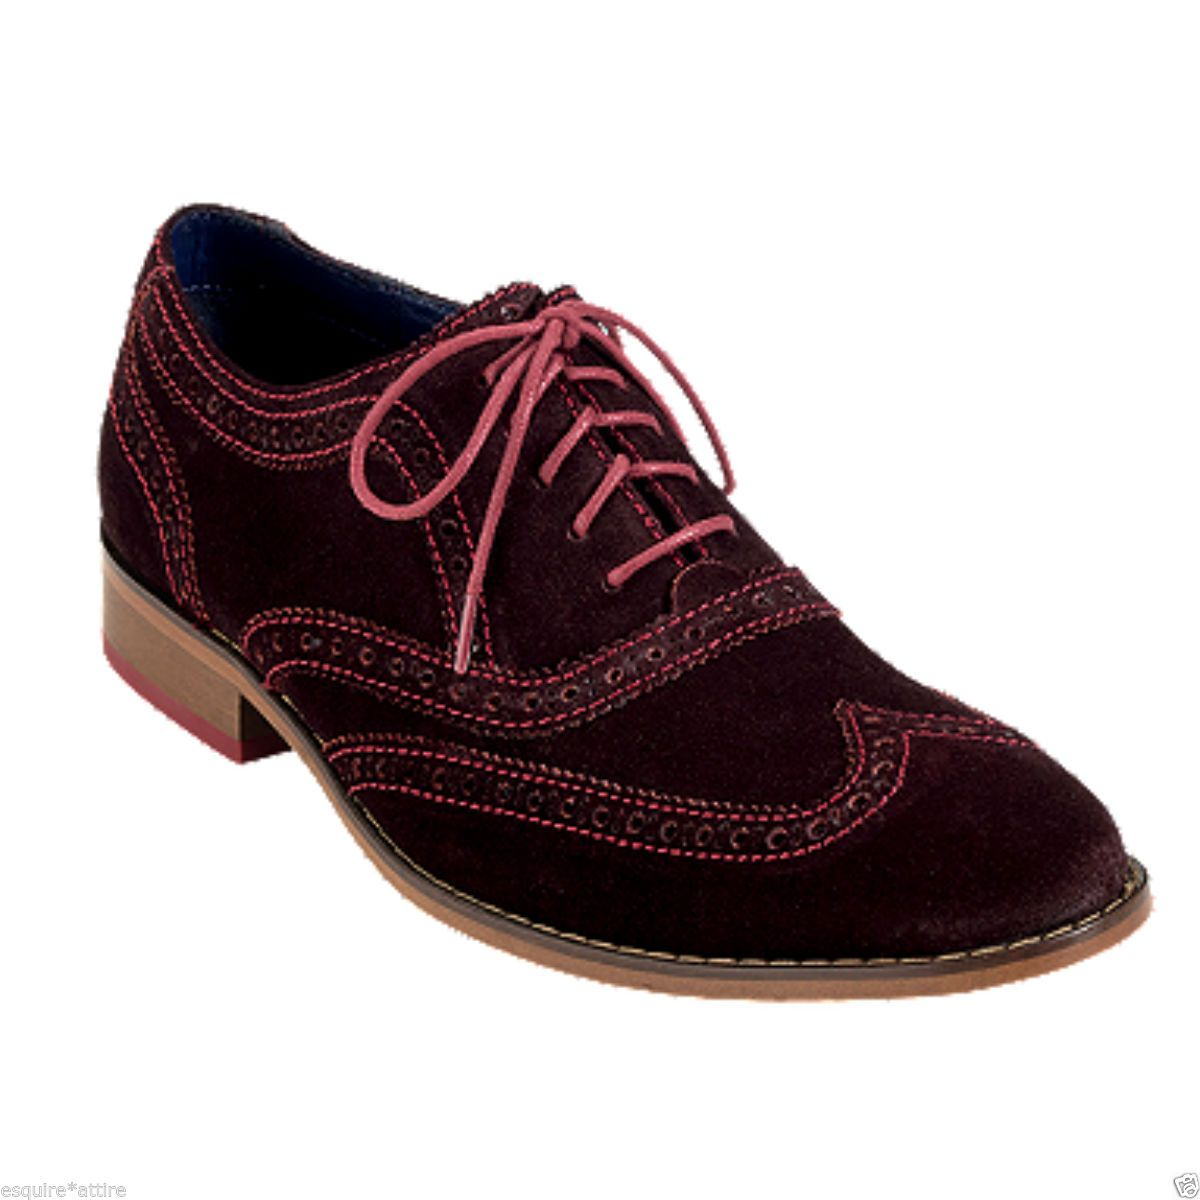 COLE HAAN C1169 Air.Colton.Csul.Wing Dark Men Shoes Size 8.5 new in ... 4ba2fabba7d